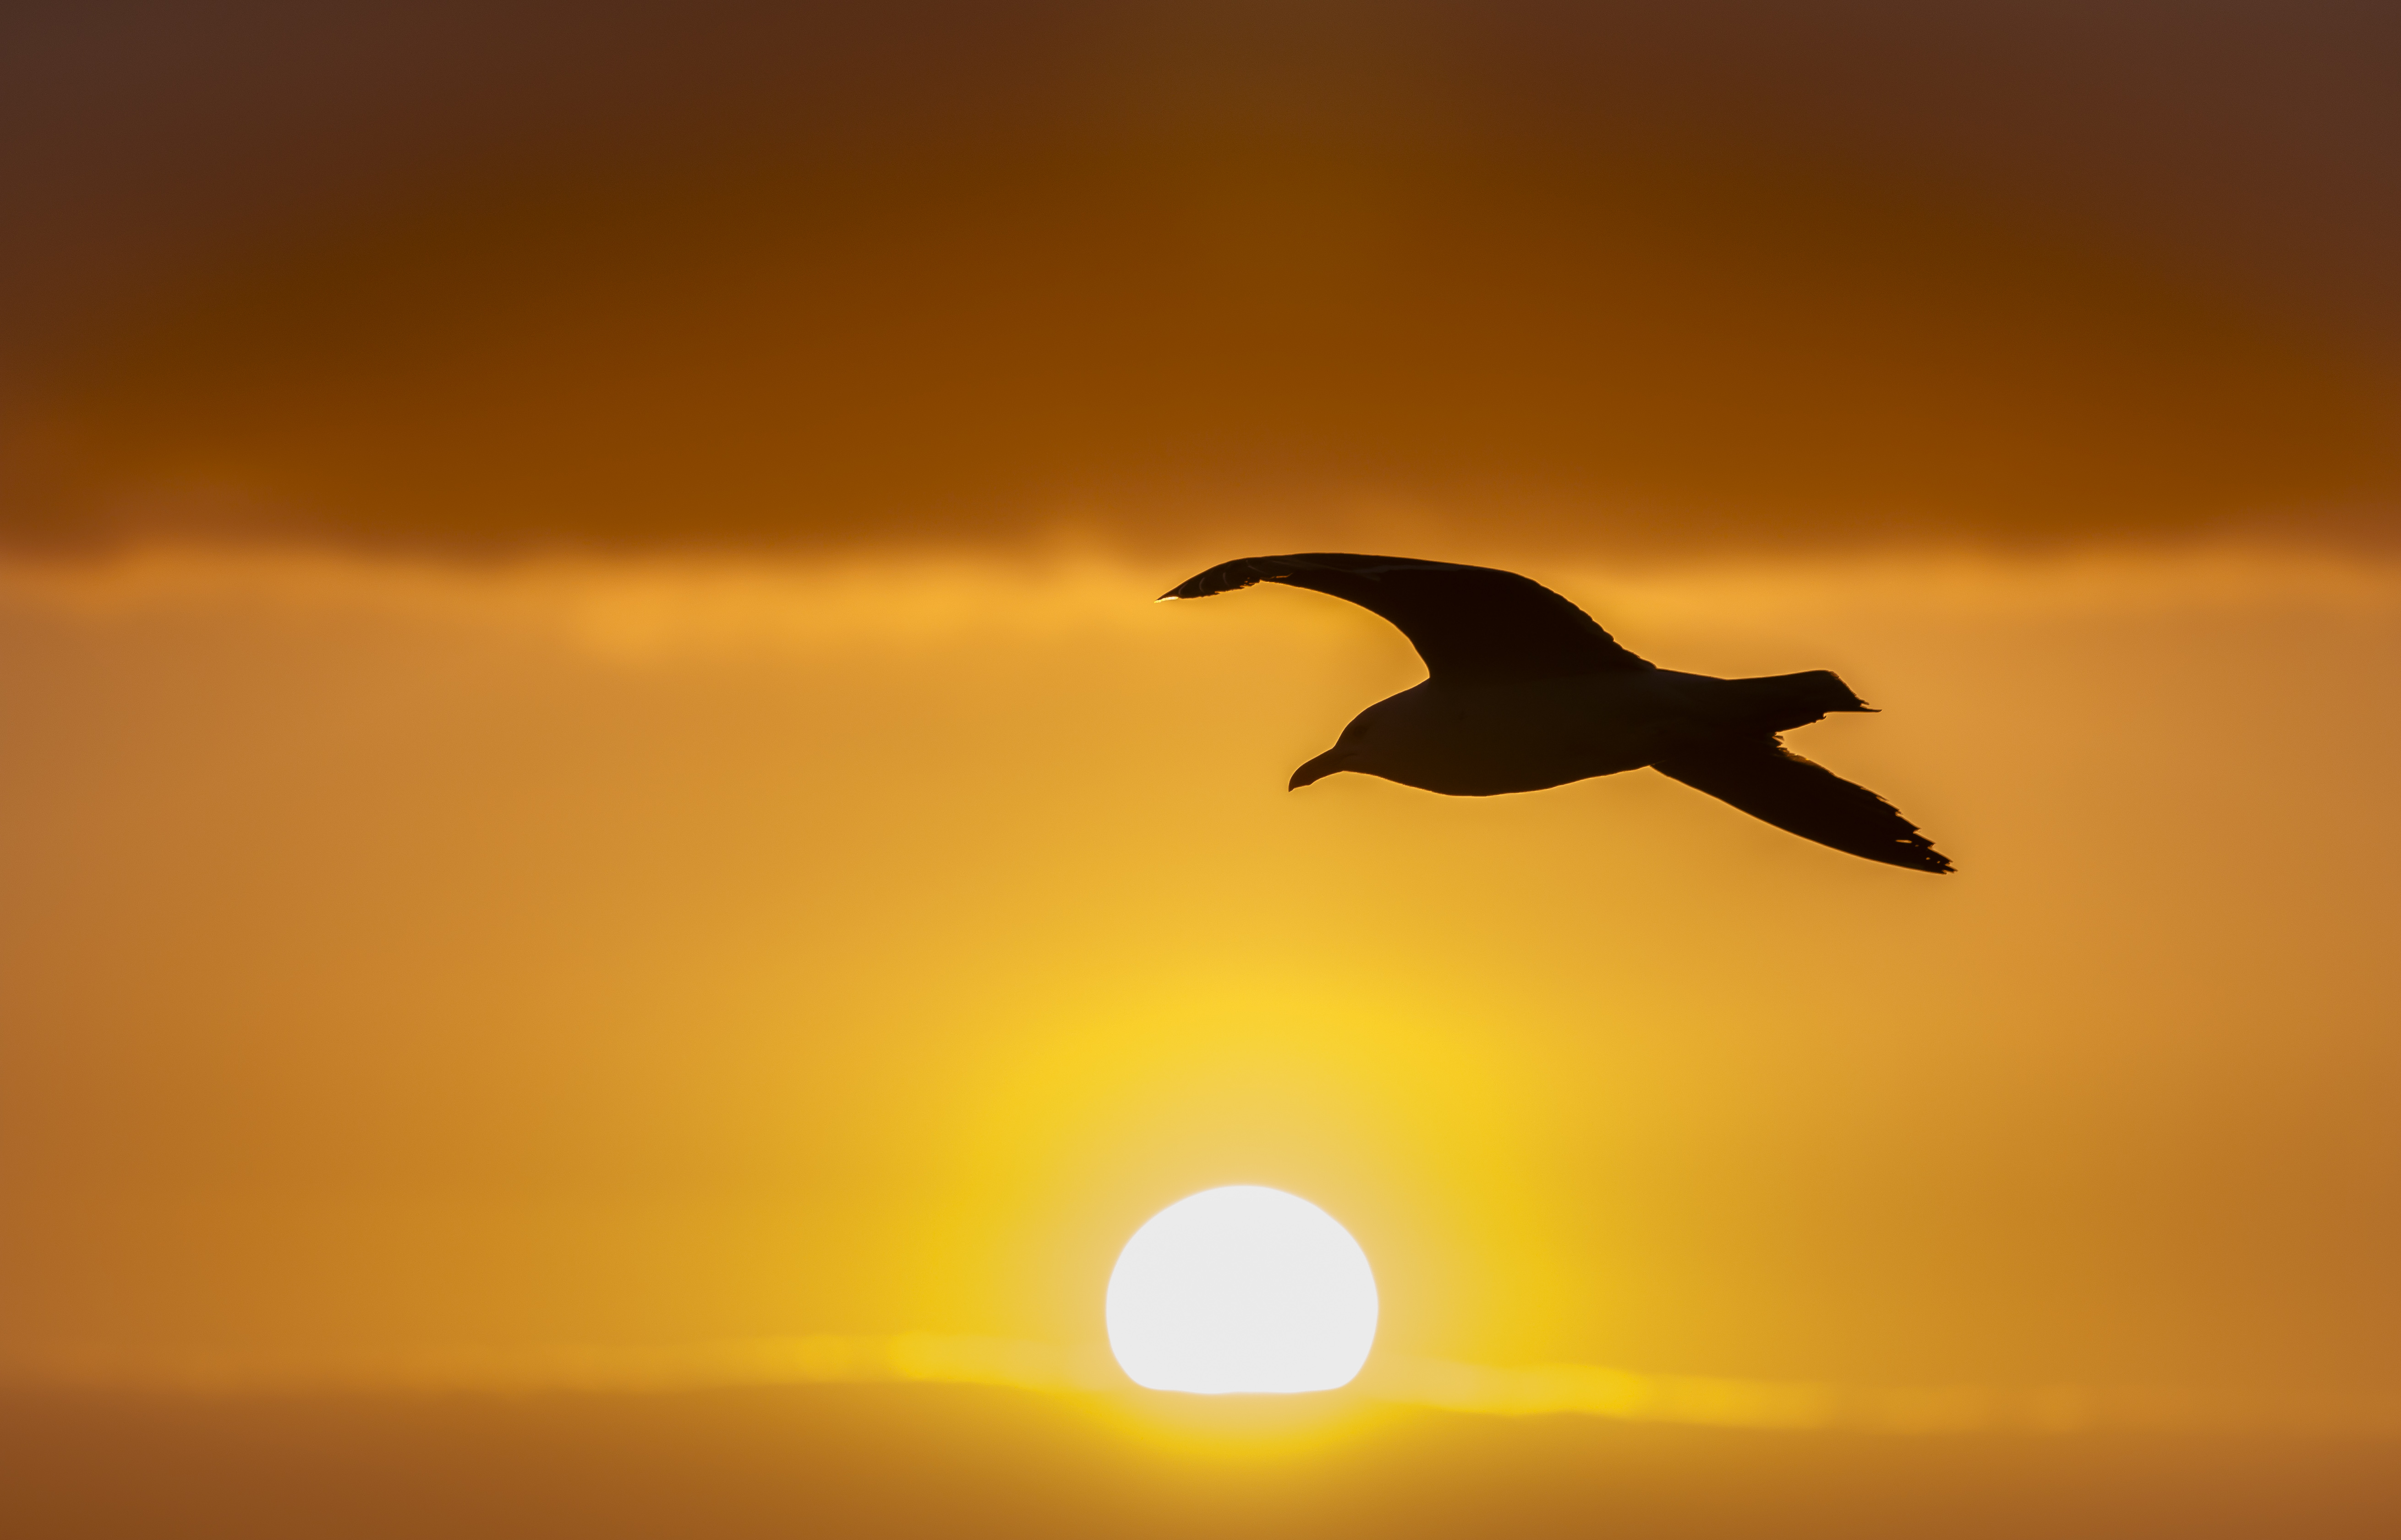 Seagull dawn flight sun 7825